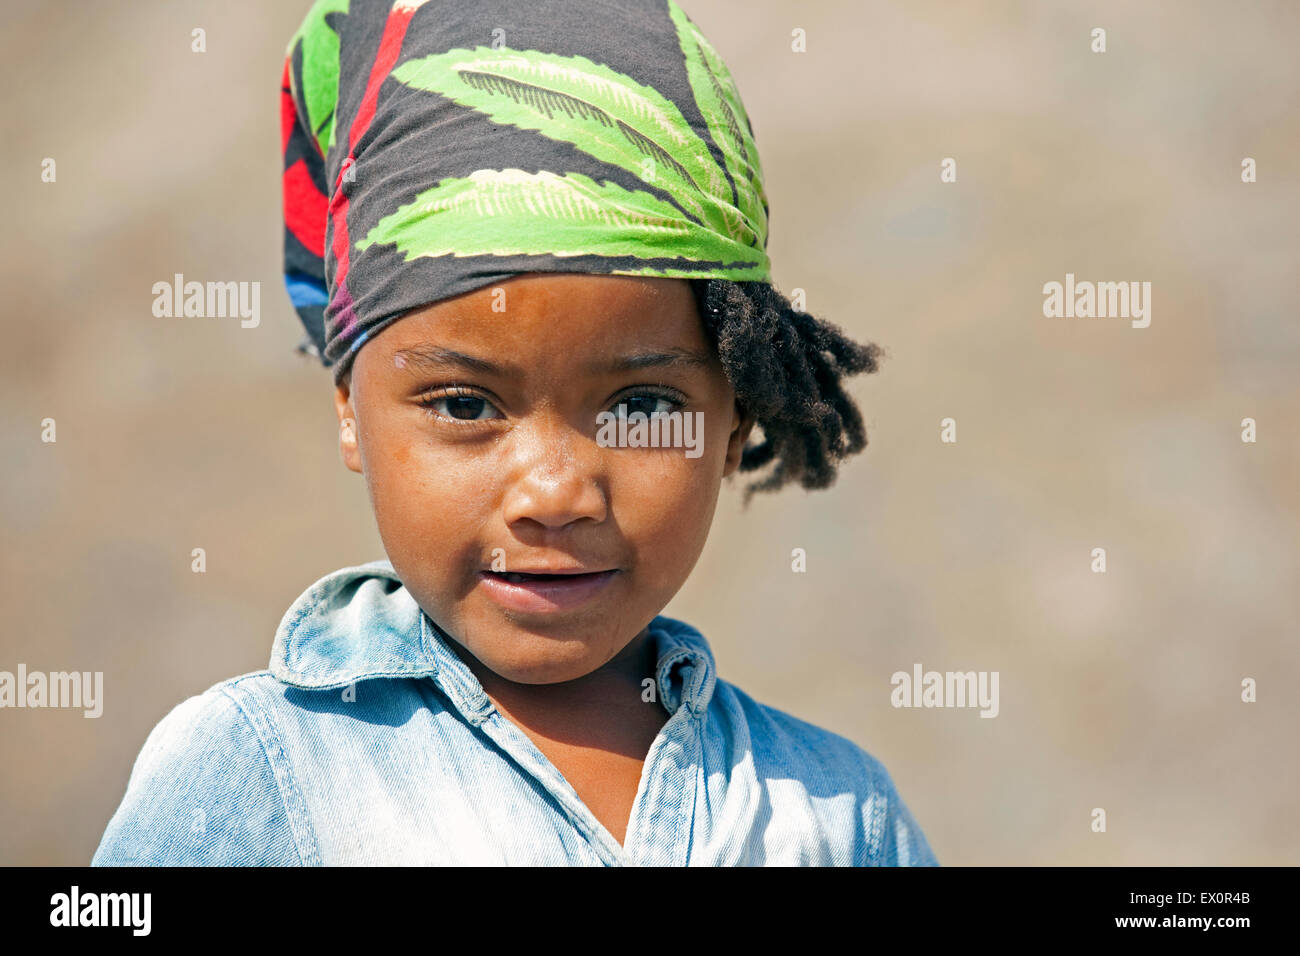 Close up portrait of Creole girl wearing headscarf on the island of Santiago, Cape Verde / Cabo Verde, Western Africa - Stock Image